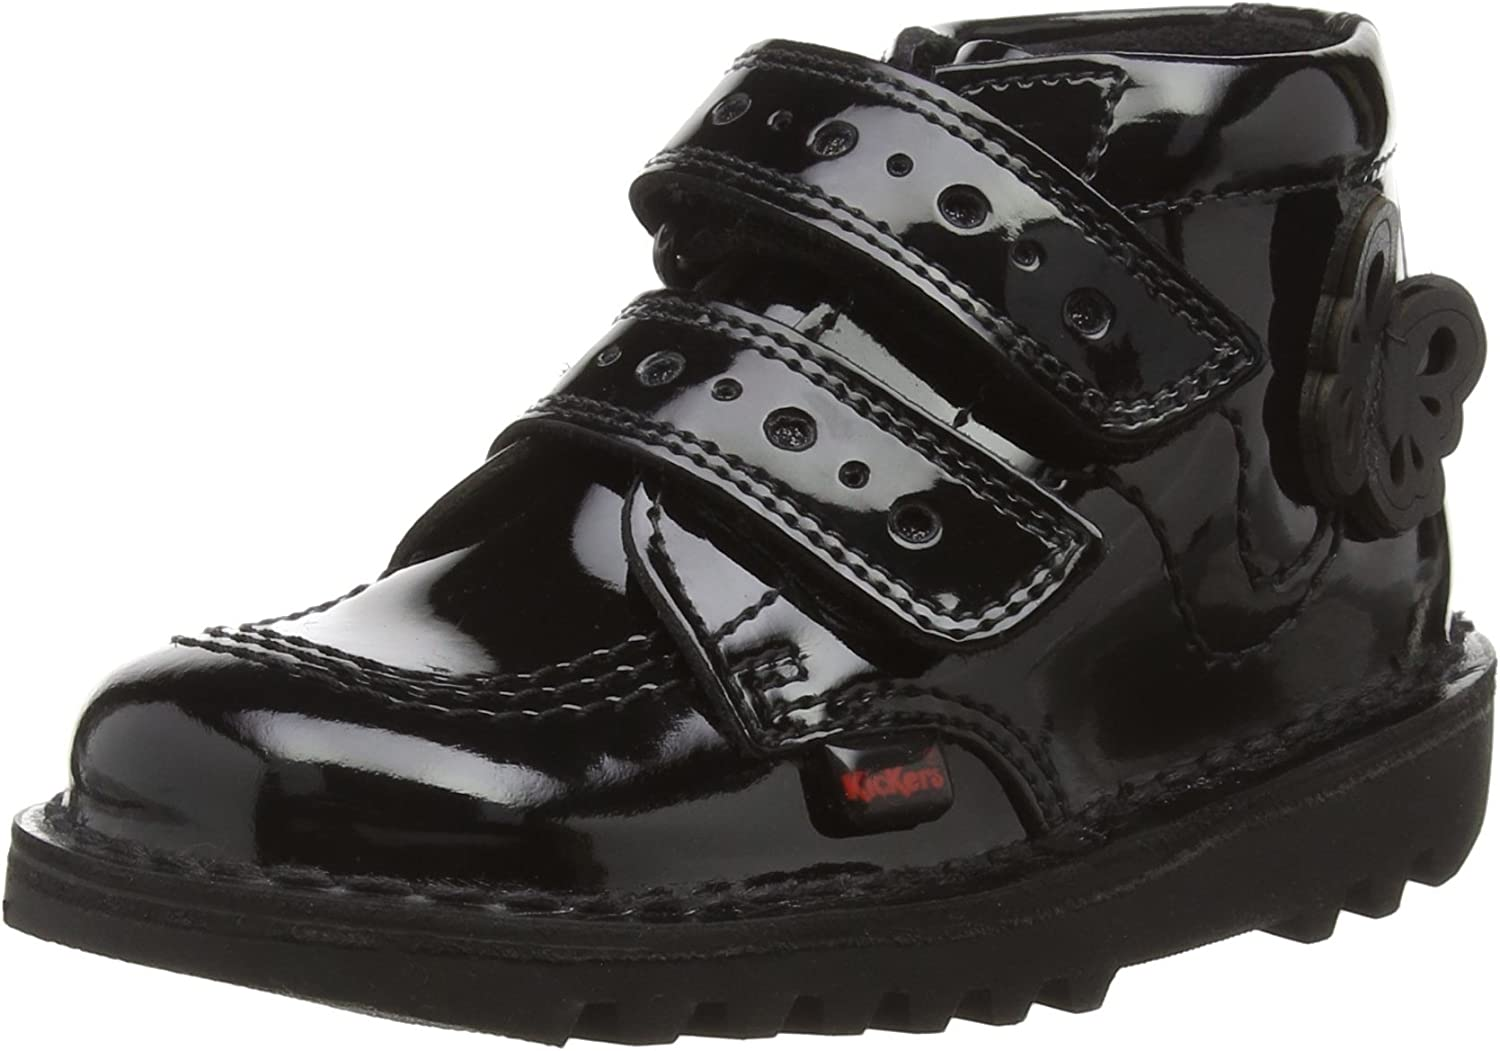 Kickers Kick Flutter discount I Black Ankle Patent Bombing free shipping Boots Infant